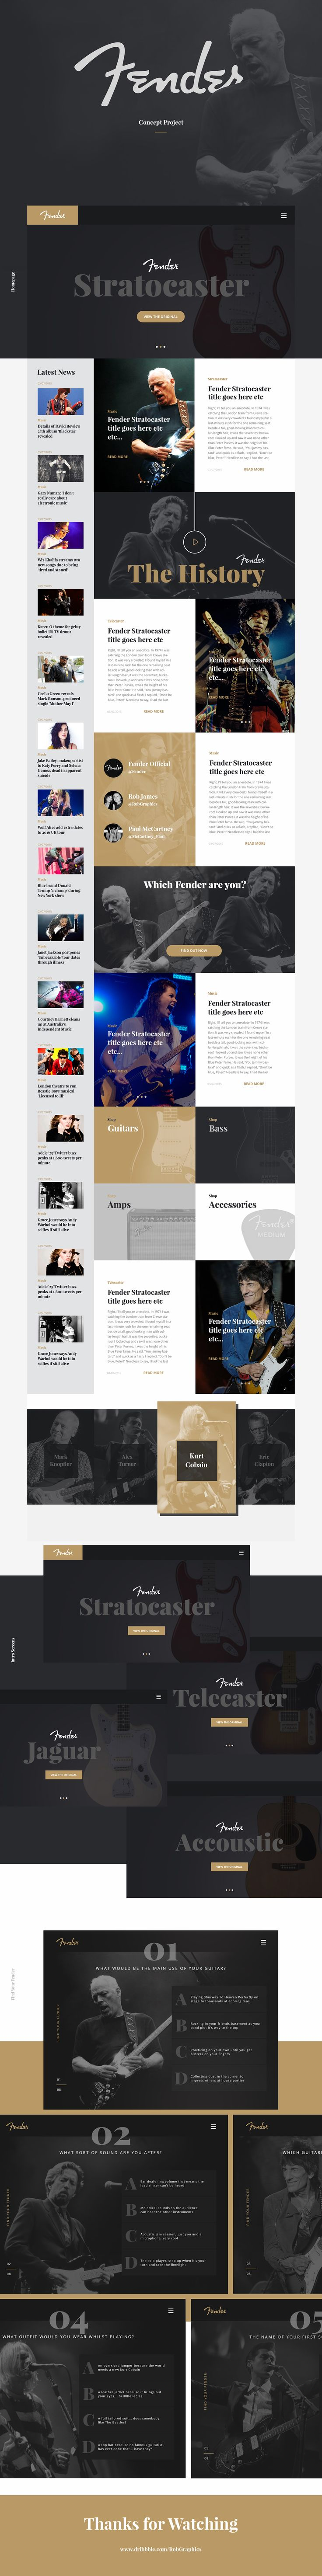 Just for fun I designed a concept landing page for Fender. It is built up of interactive content, classic Fender archive content and up to date news stories. The idea is based around discovery, I wanted the user to be inspired by the Fender legacy and be …